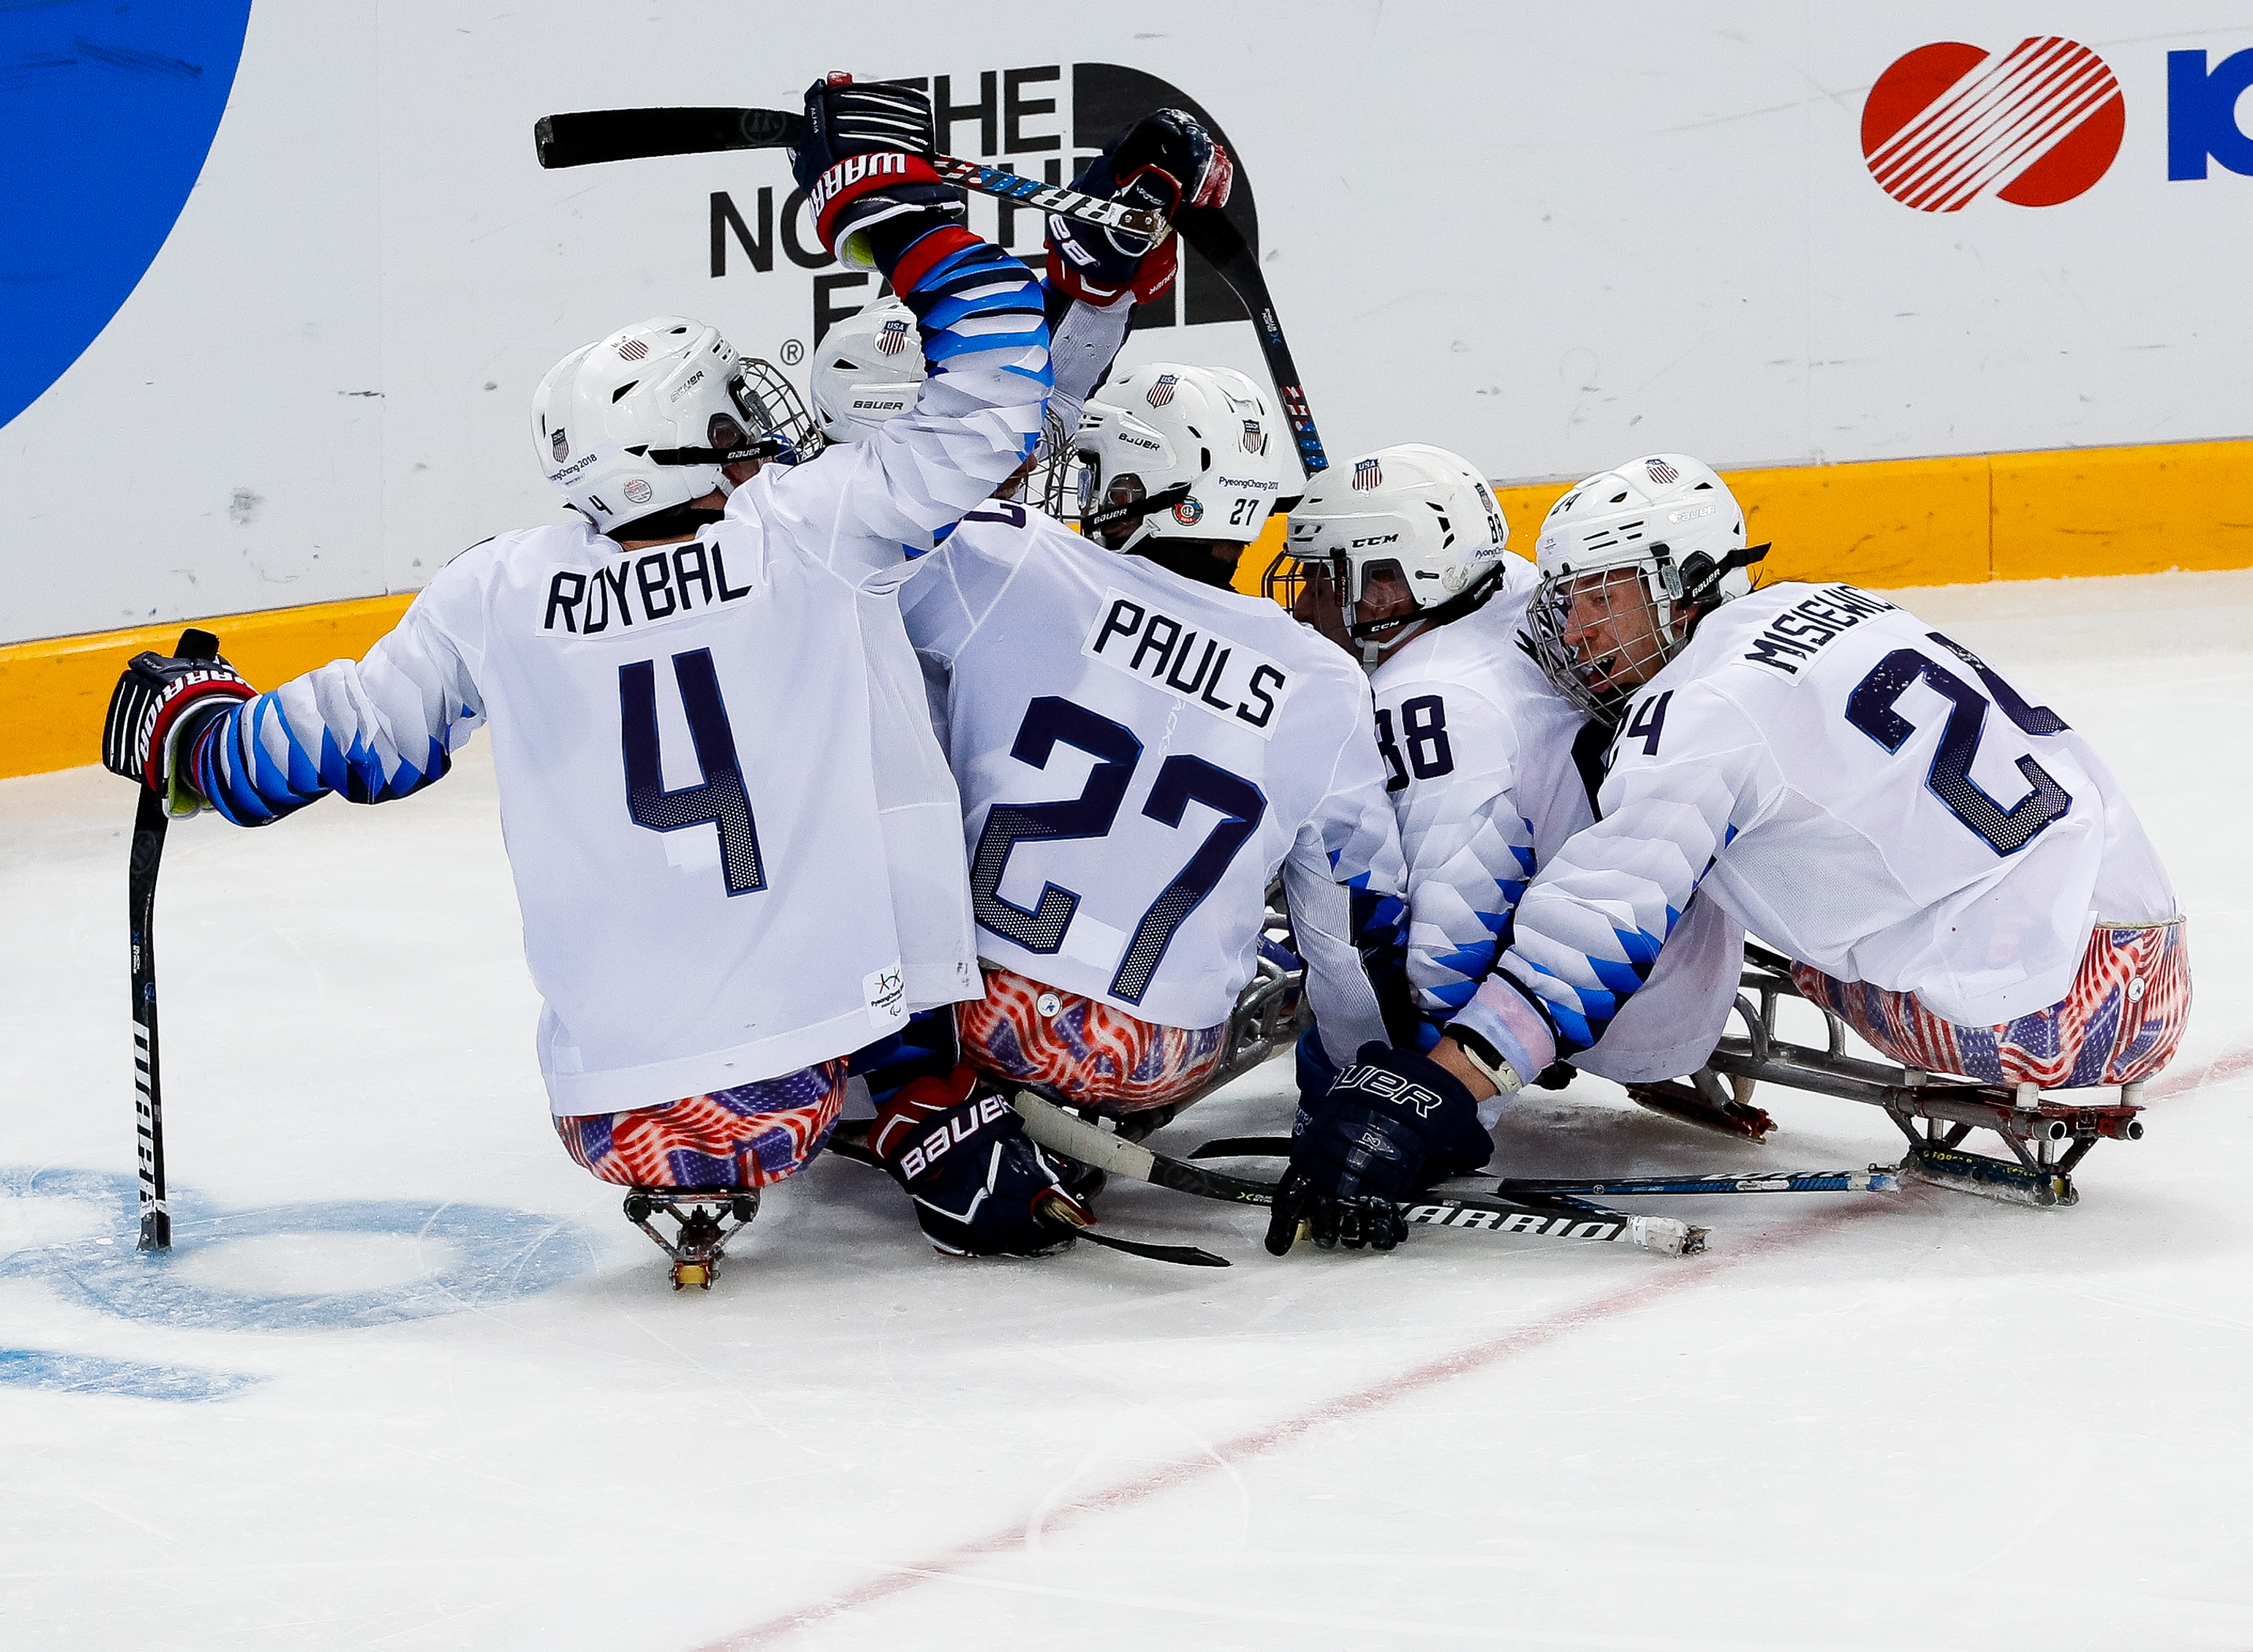 2018 Paralympic Winter Games - Day - 9